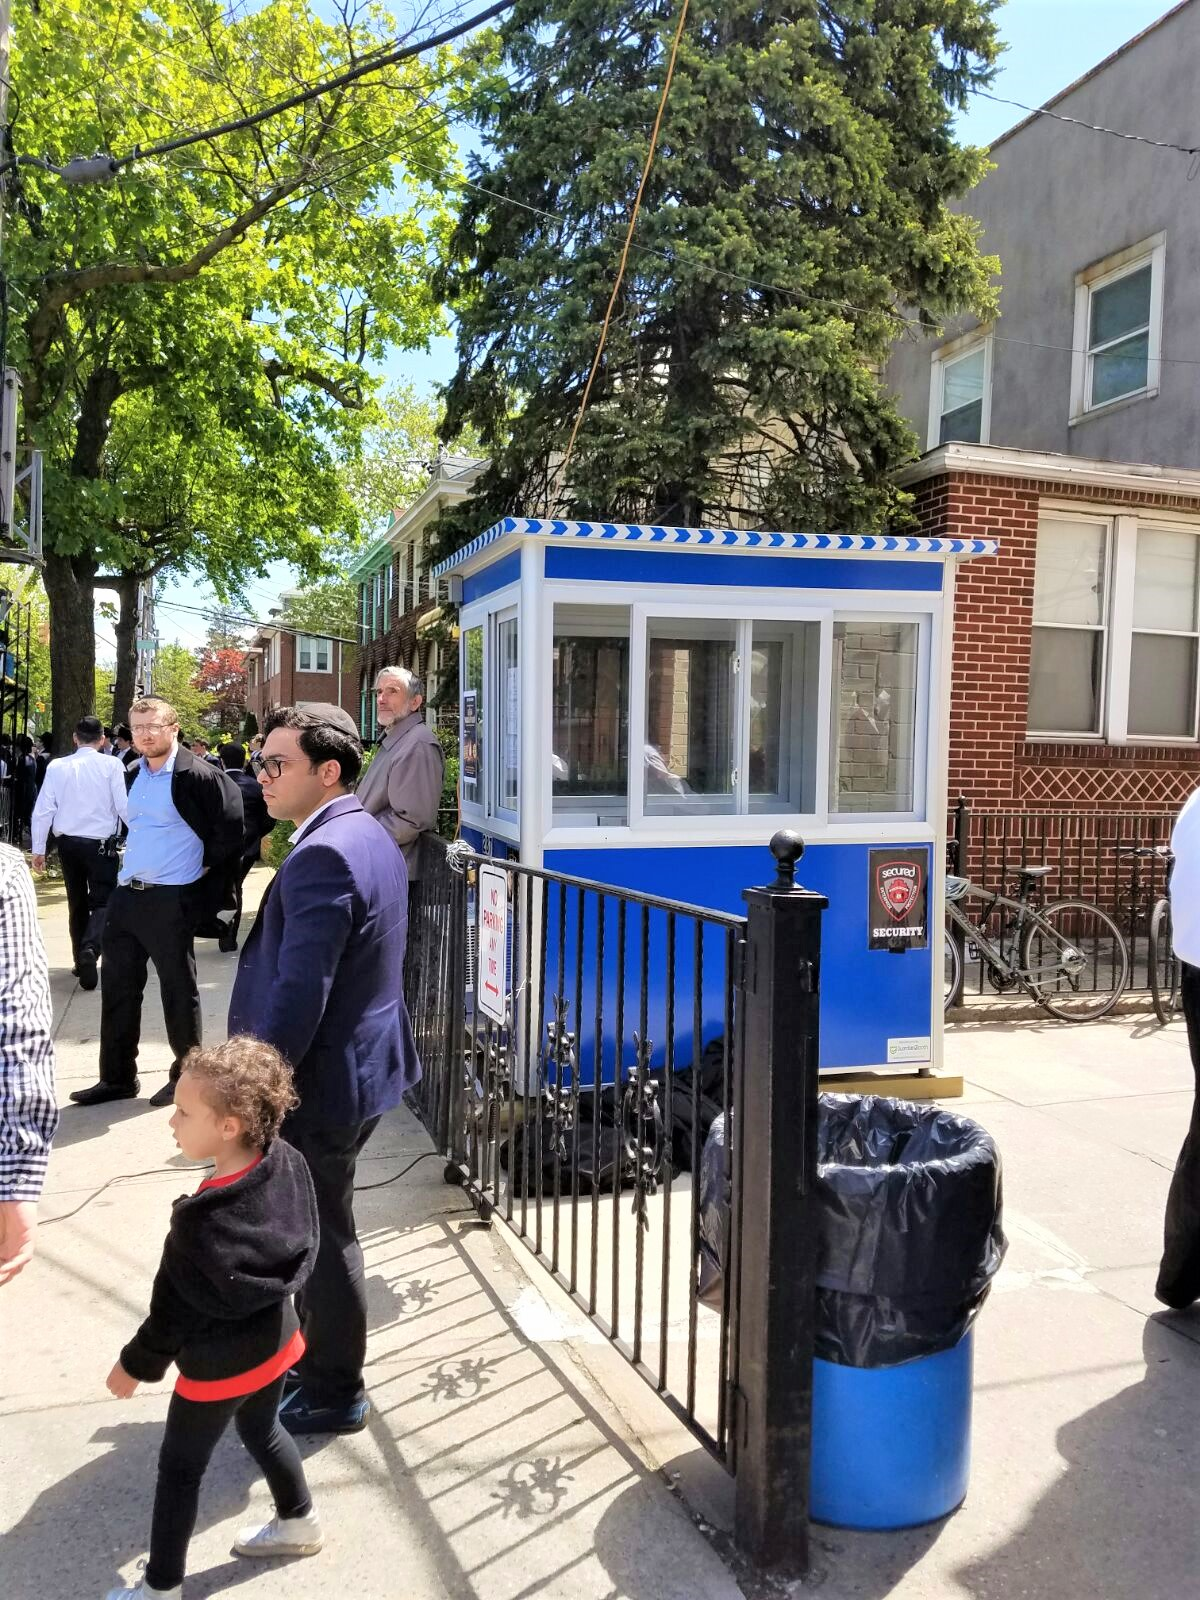 4x6 School Security Booth in Brooklyn, NY with Sliding Windows, Built-in AC, Baseboard Heaters, and Perimeter Security Fencing